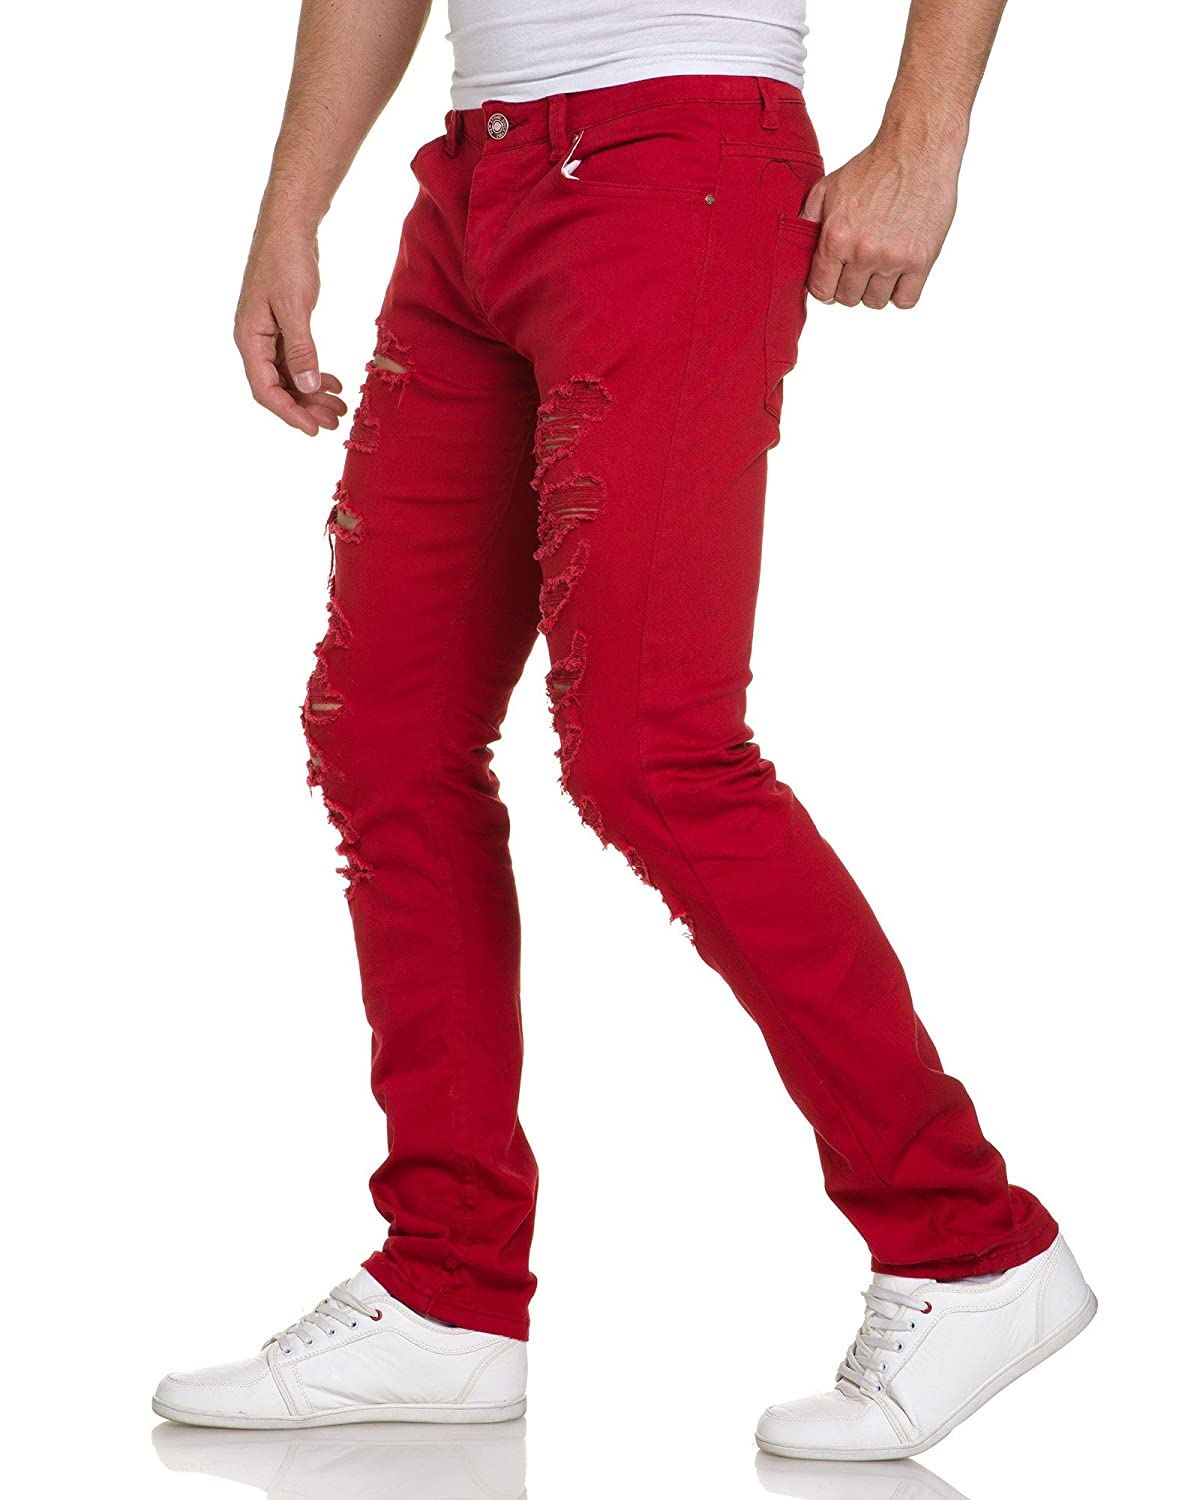 BLZ jeans - Man ultra skinny red jeans with holes